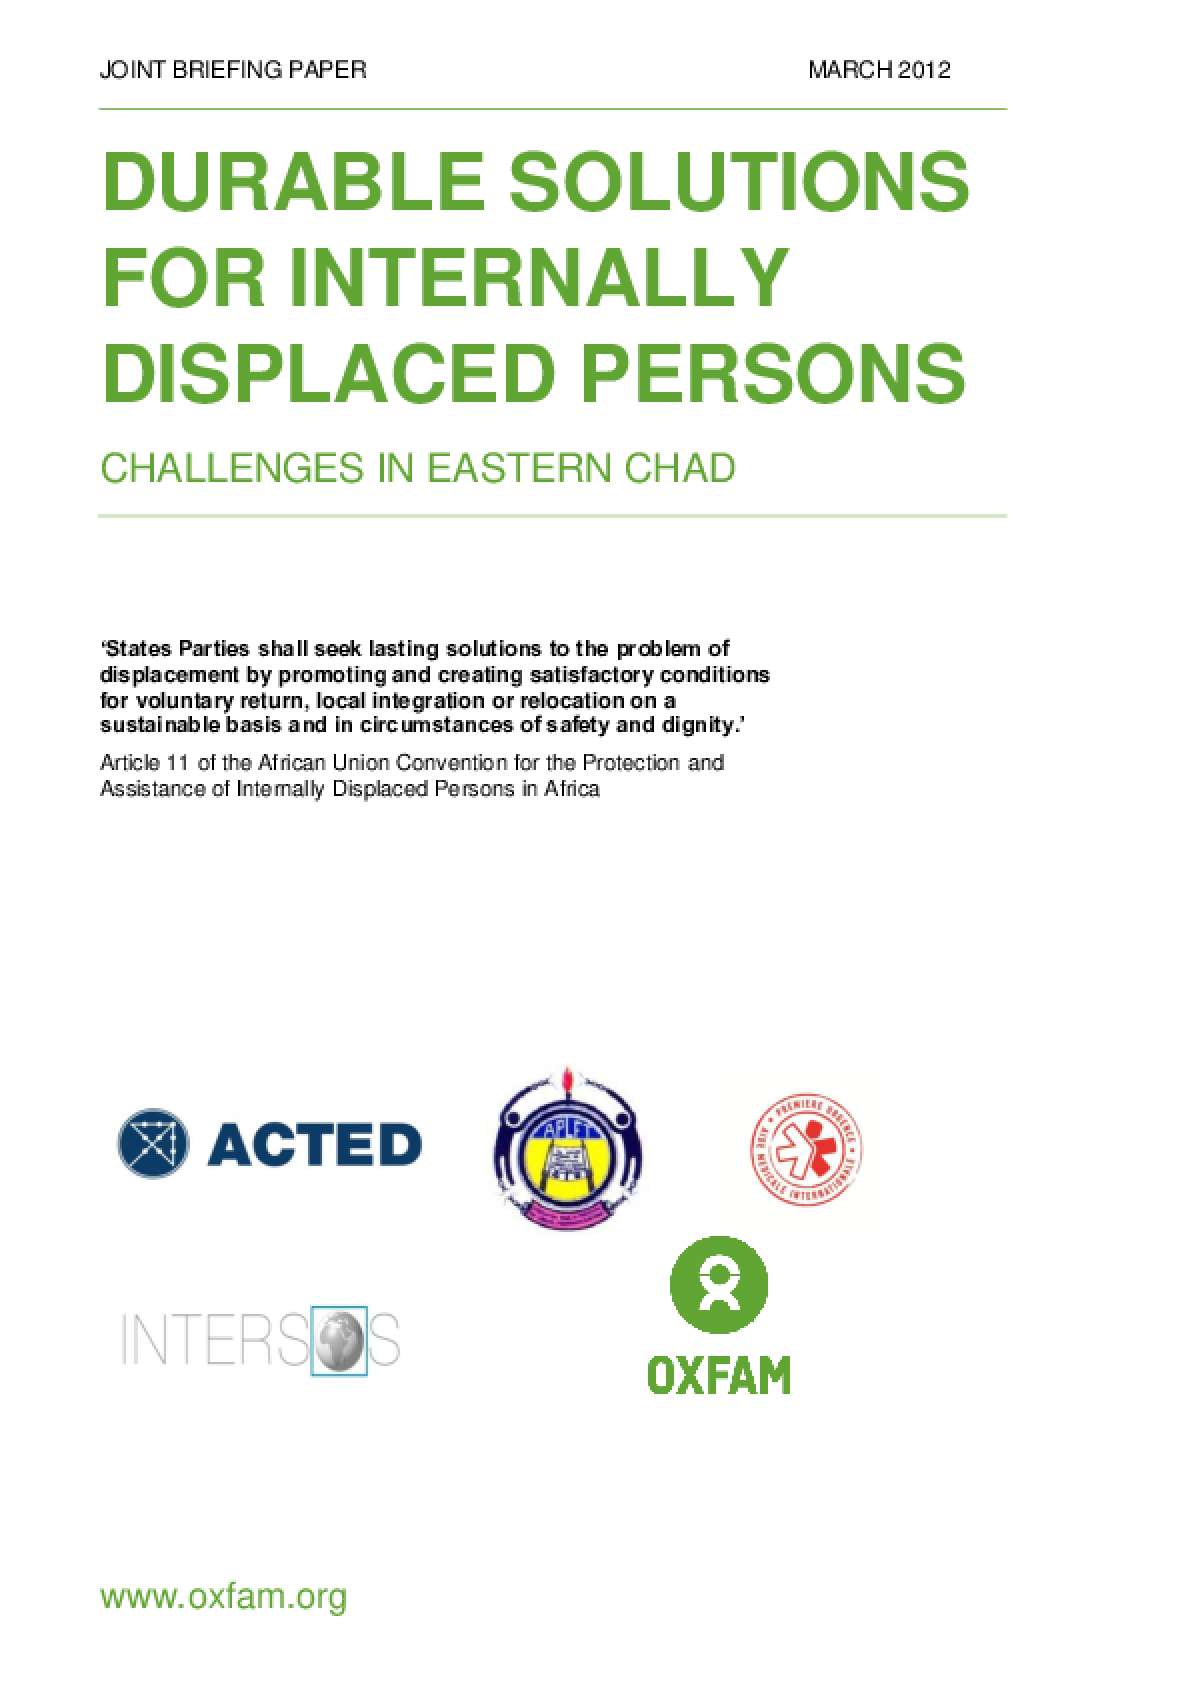 Durable Solutions for Internally Displaced Persons: Challenges in eastern Chad